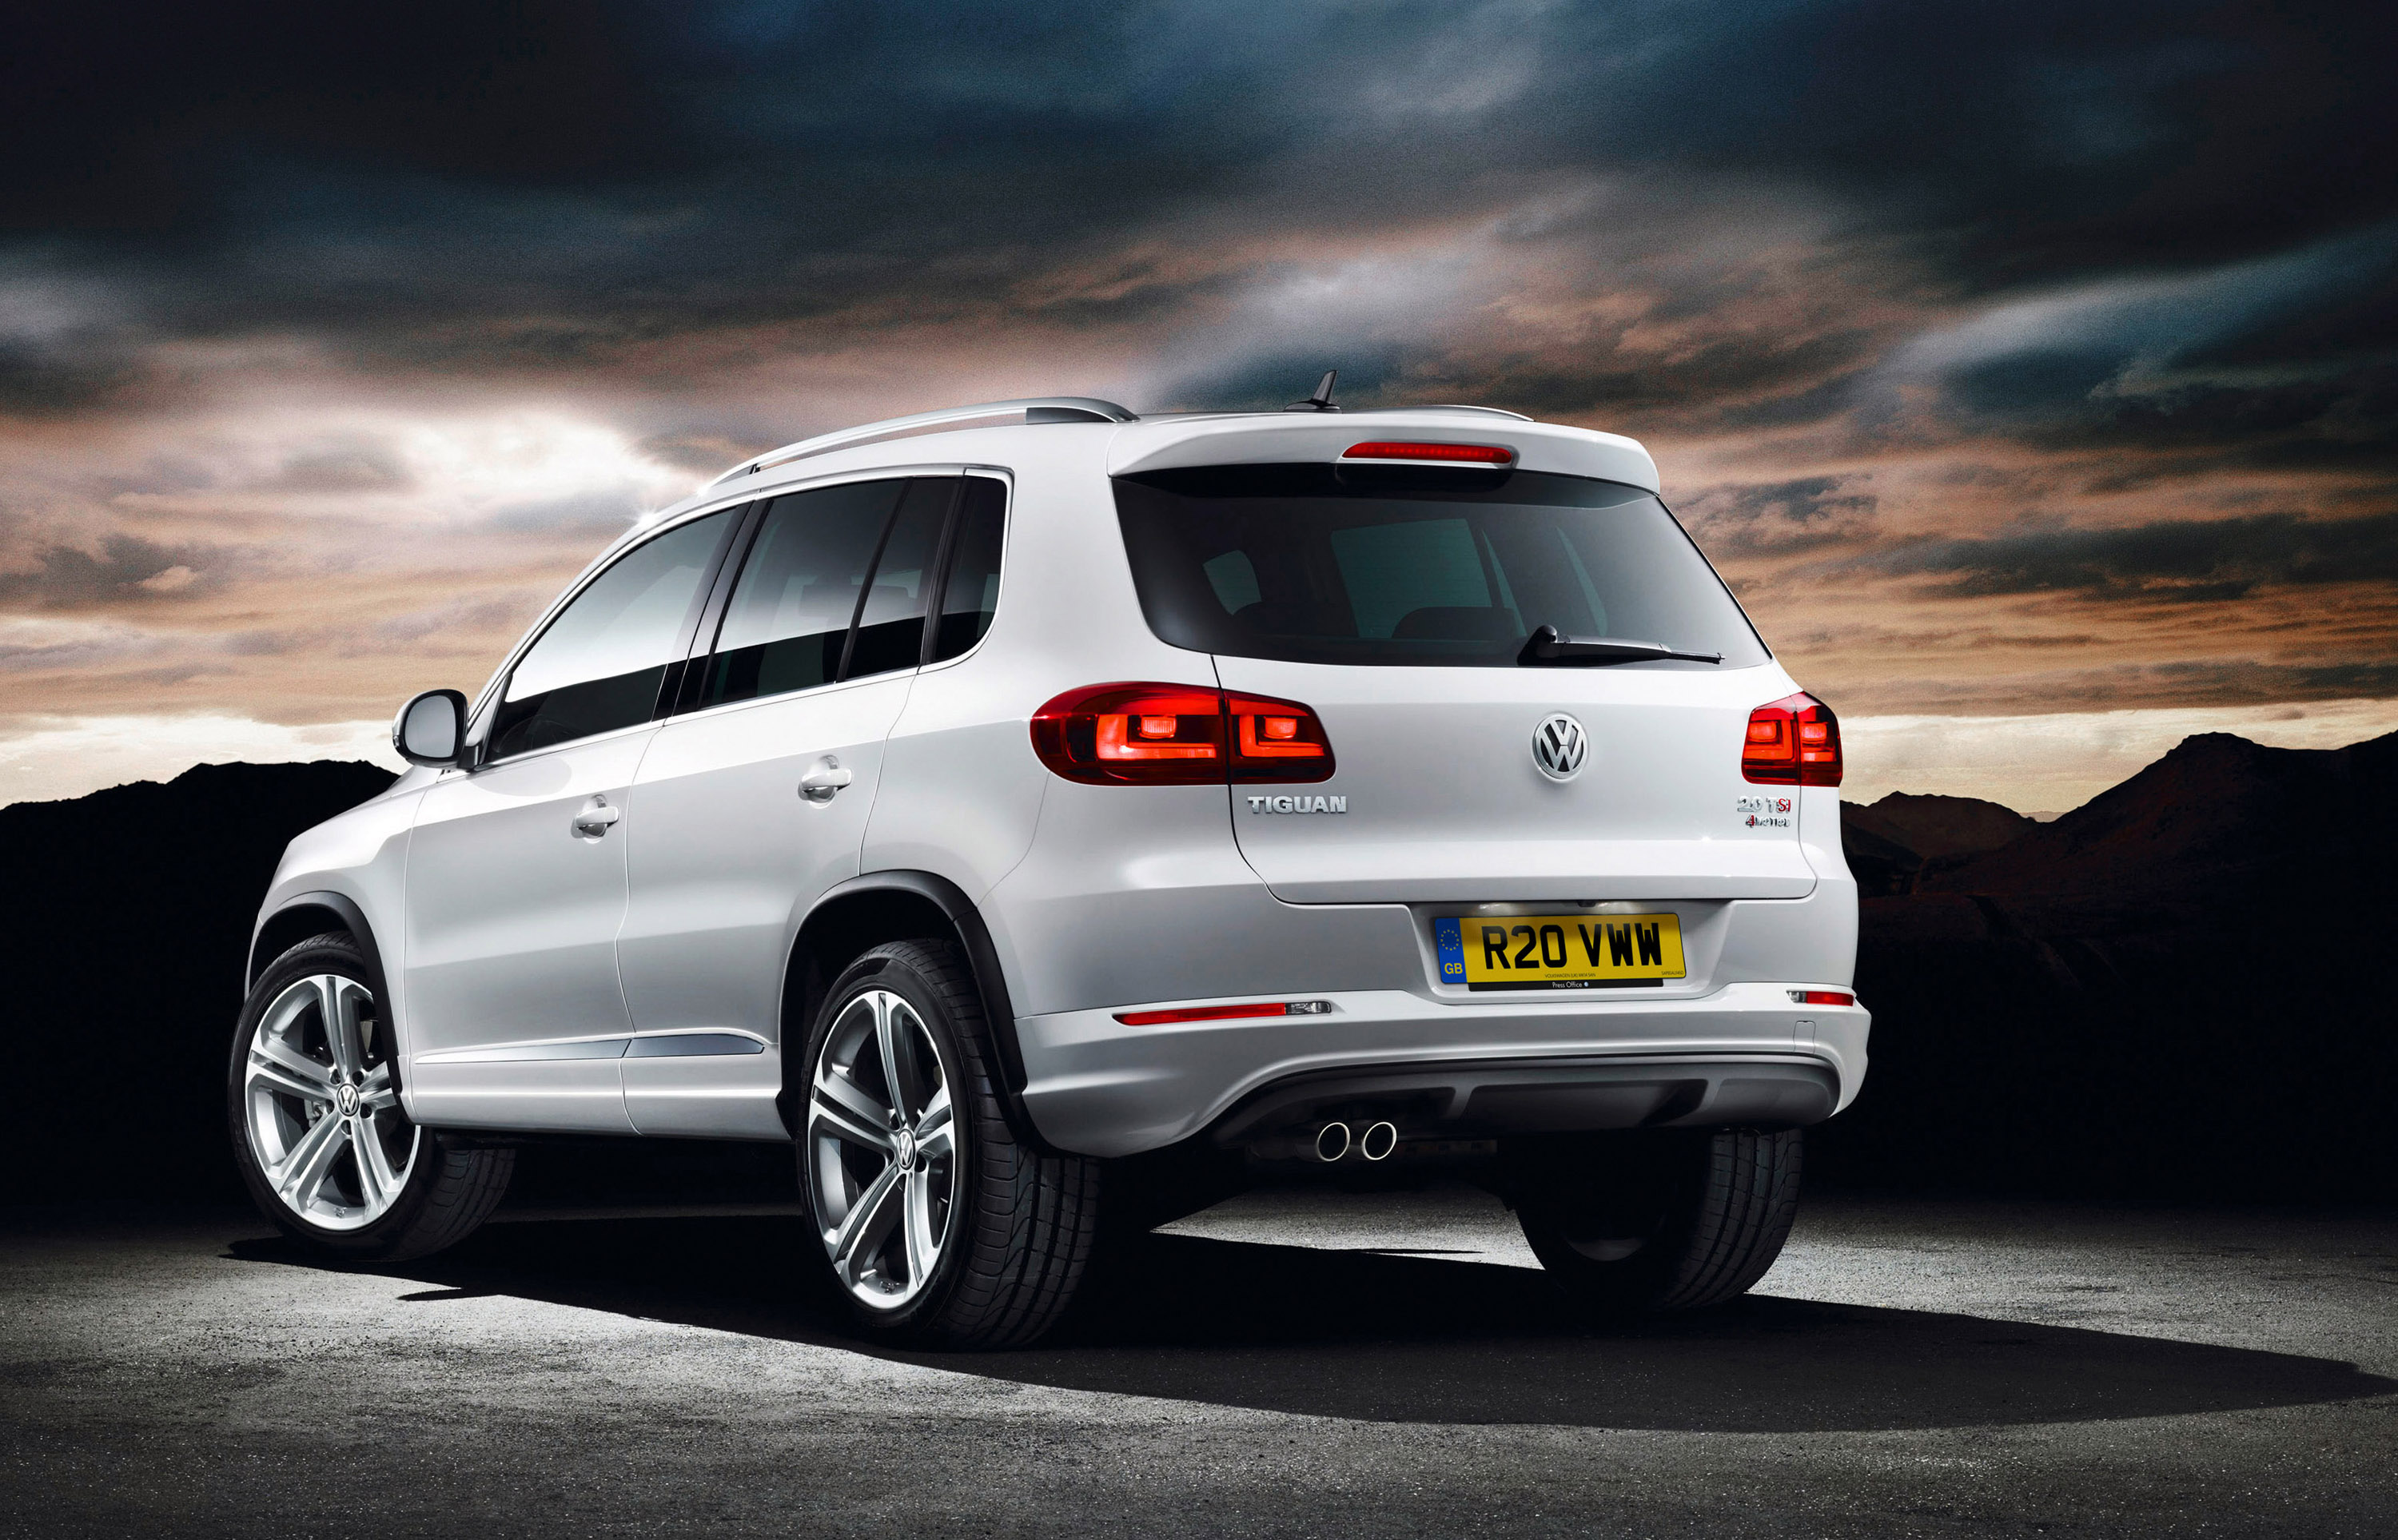 2013 Volkswagen Tiguan R Line Pricing Announced